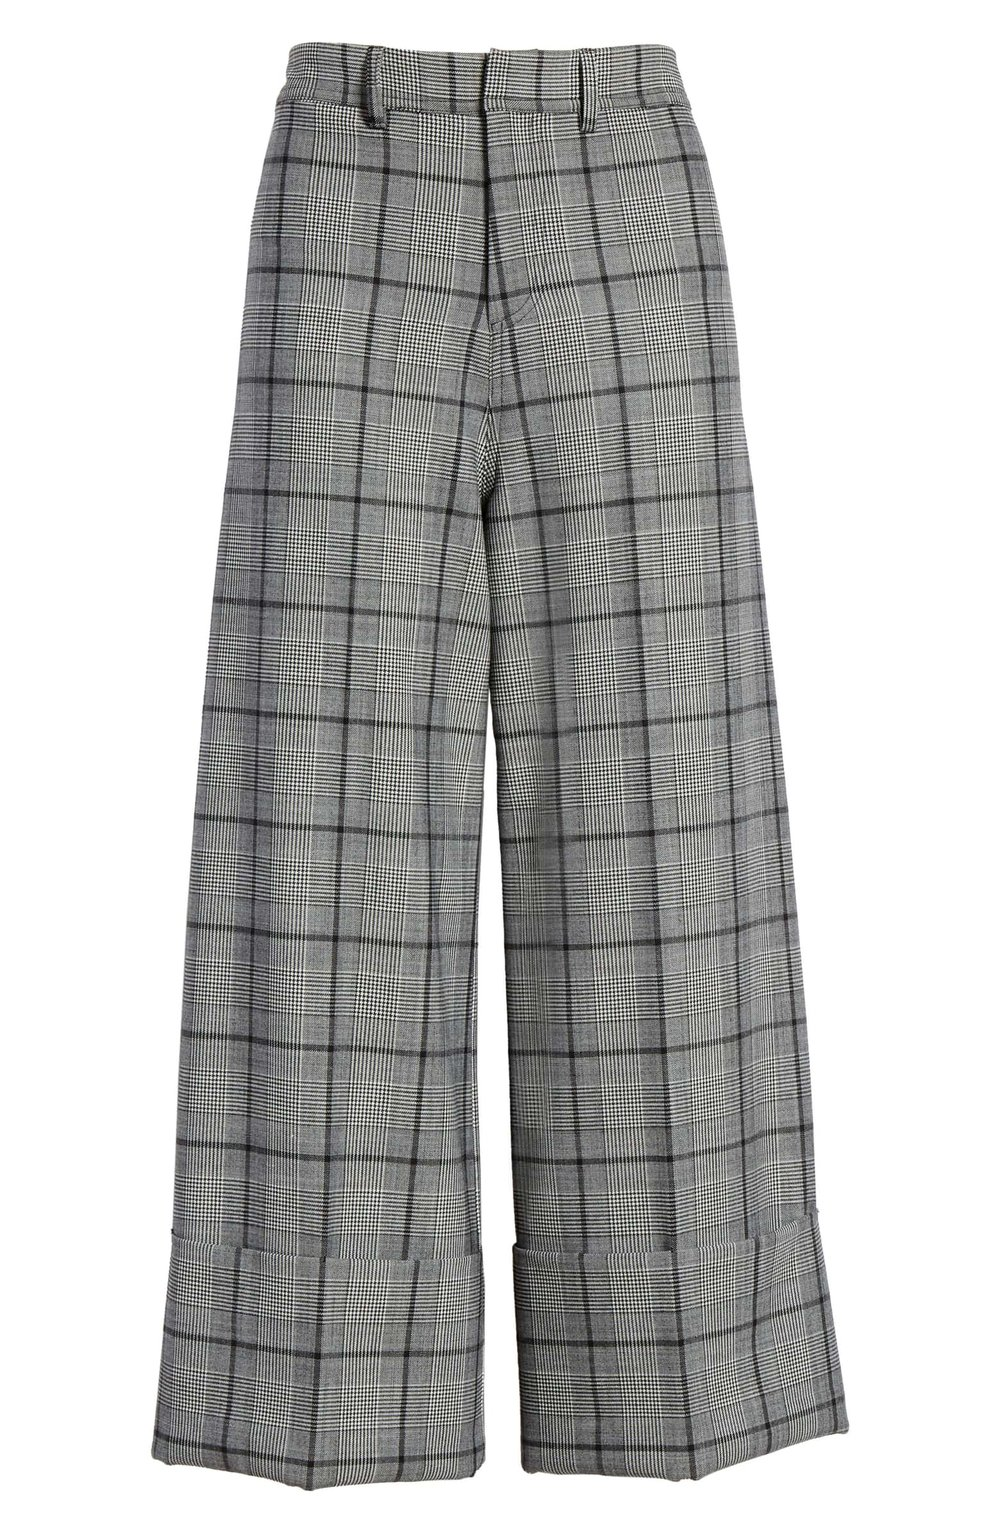 Sea Bacall Cuff Crop Wide Leg Pants - Wide leg pants = comfy. Cropped wide leg pants = totally on trend. I can just picture these short pants with a pair of white heeled booties poking out.